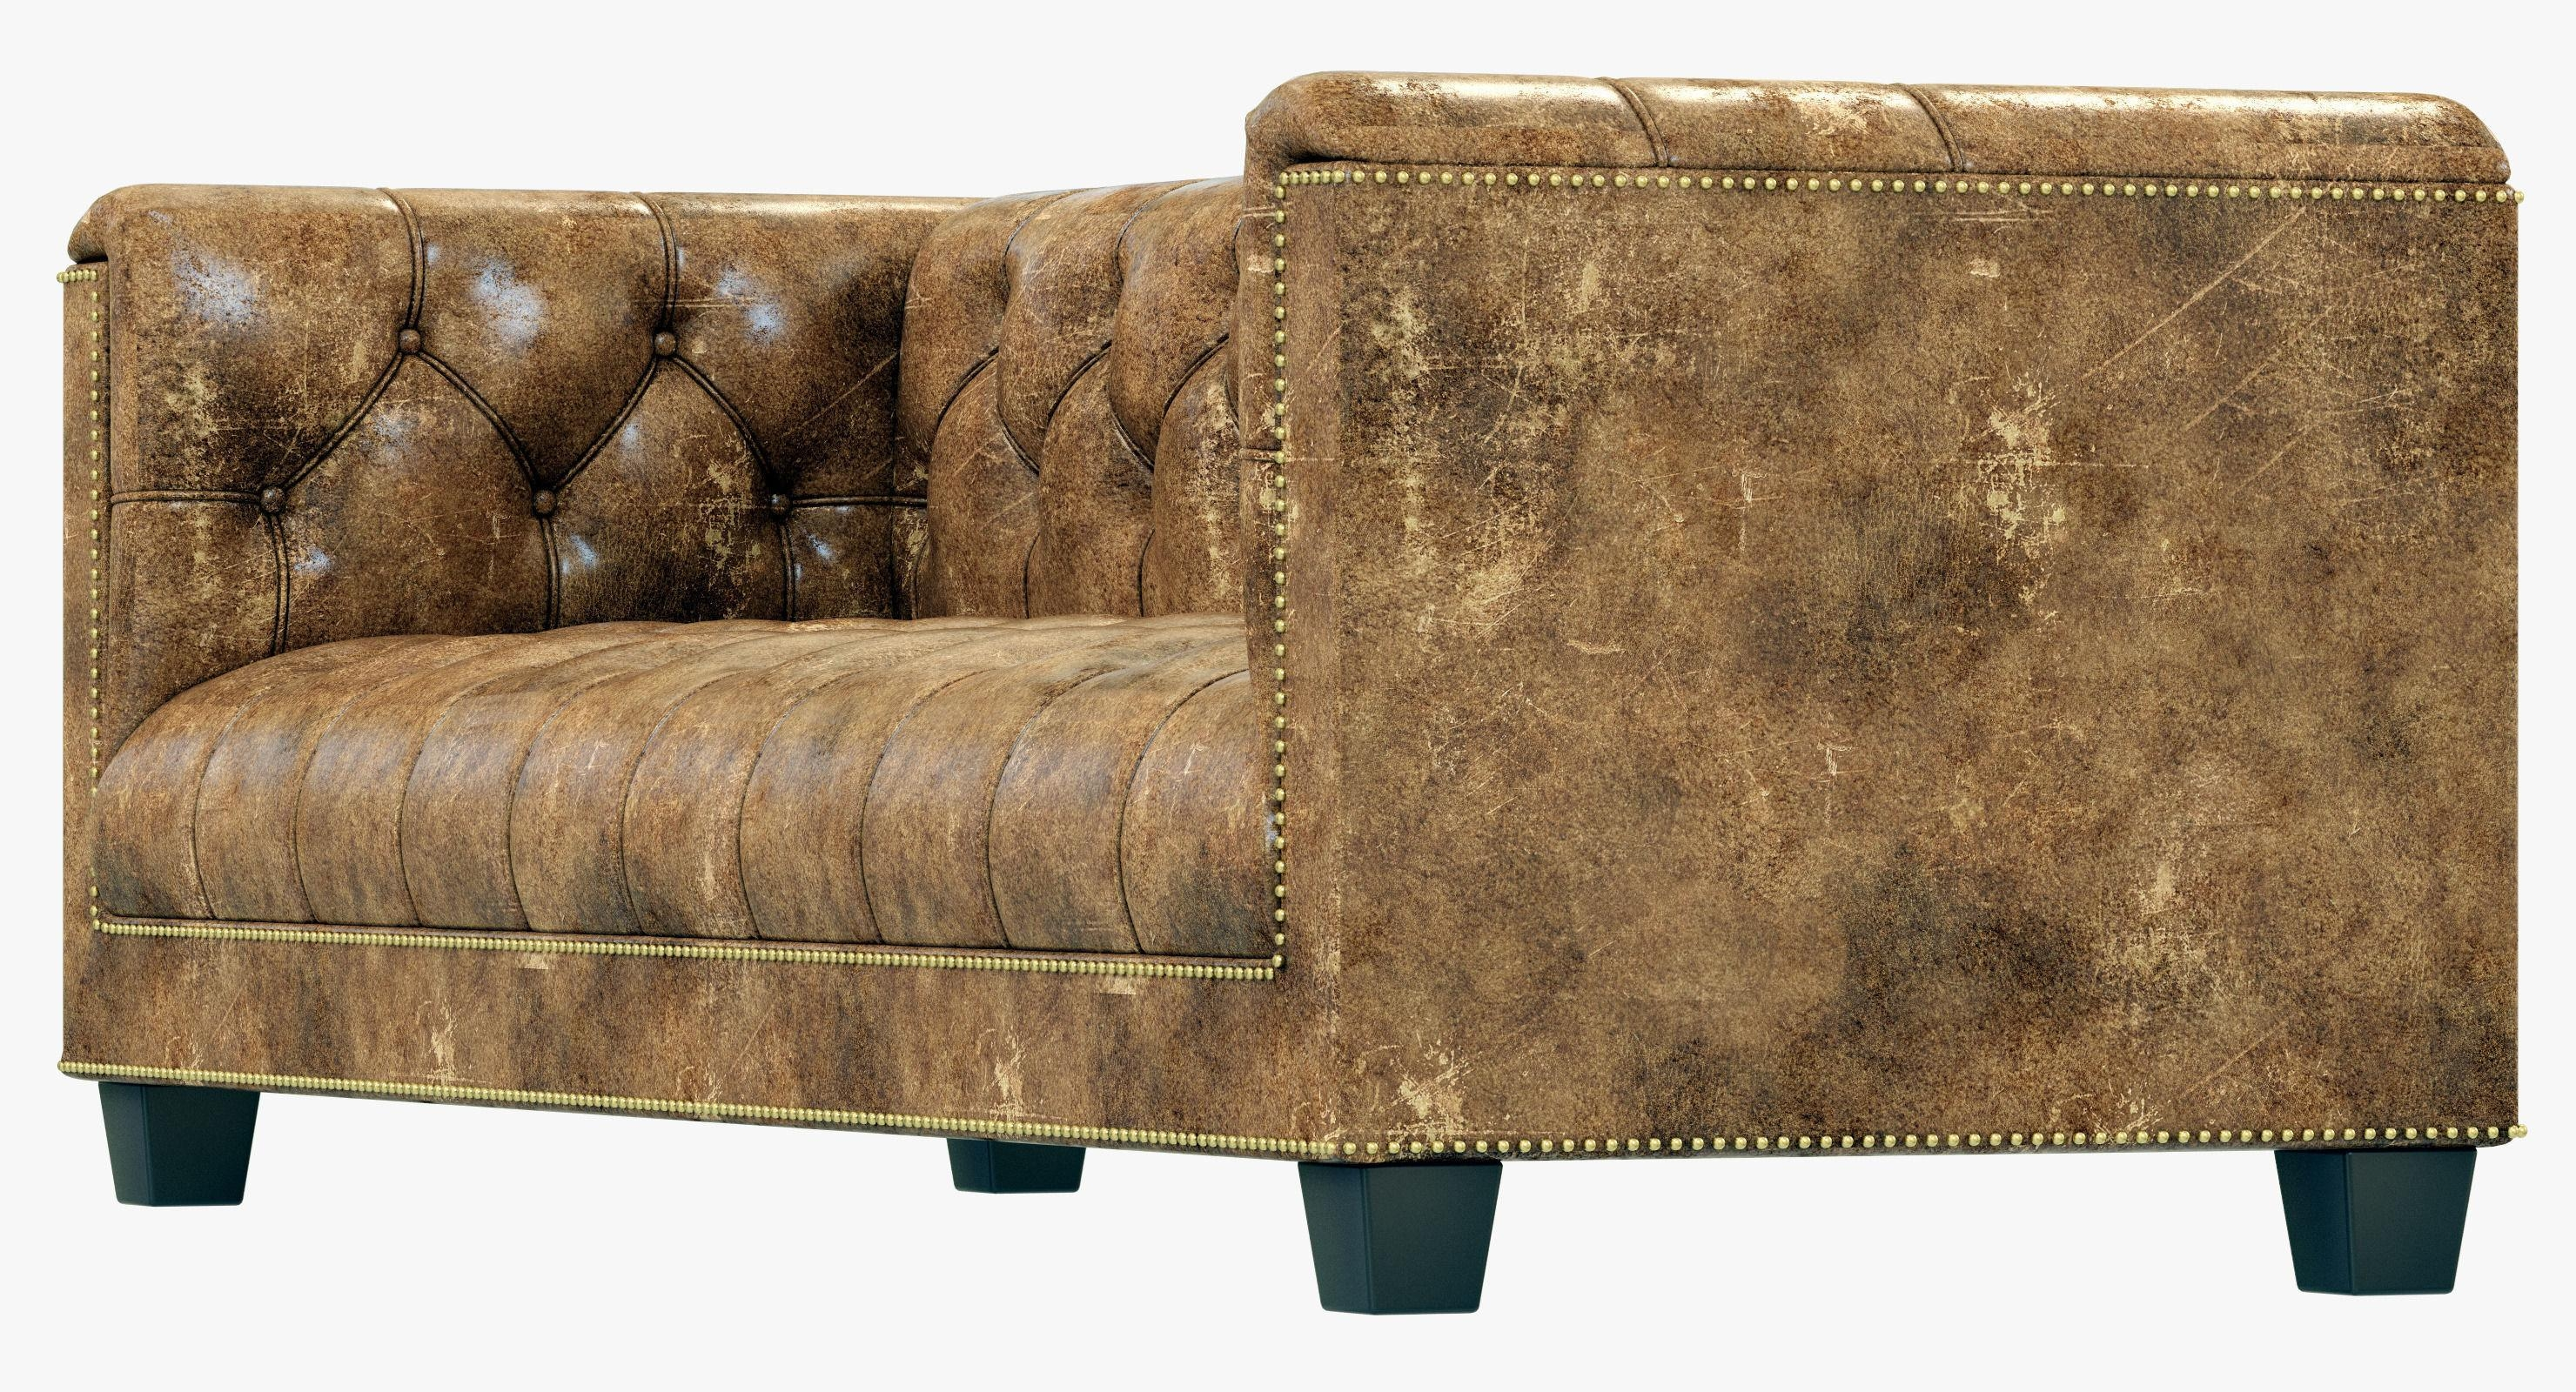 Restoration Hardware Savoy Leather Sofa 3D Model Throughout Savoy Leather Sofas (View 5 of 20)